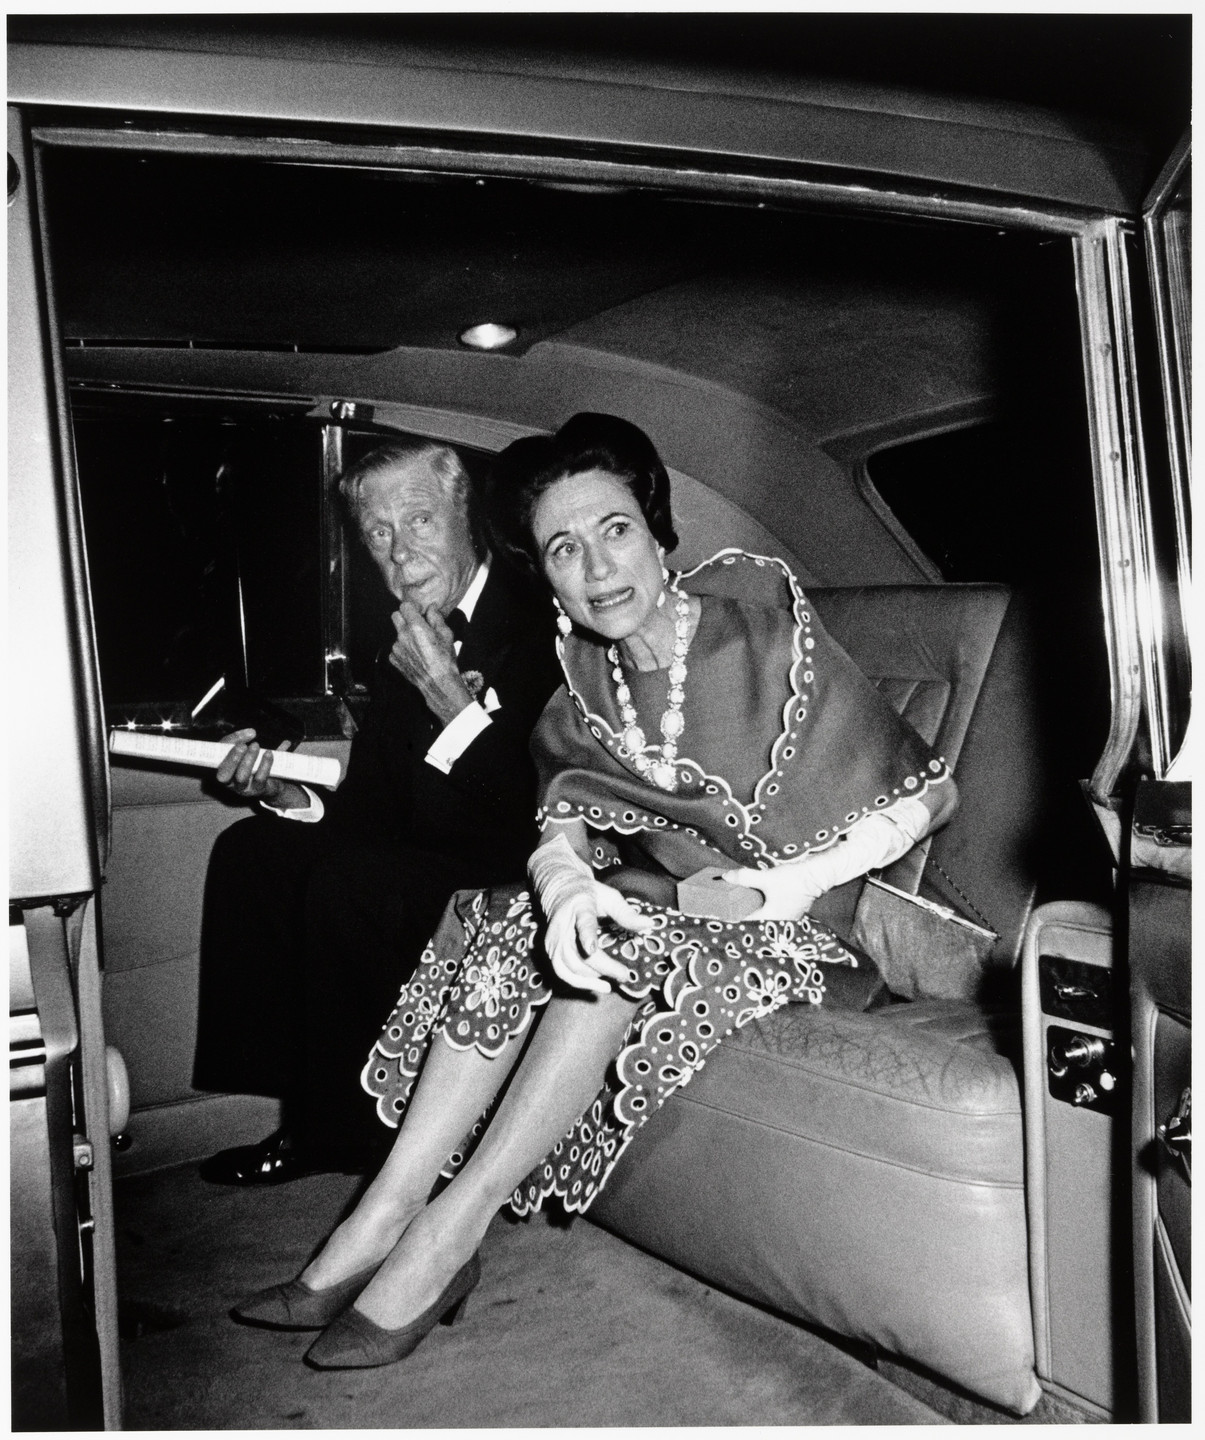 Ron Galella. The Duke and Duchess of Windsor at the Opening of Wildenstein Gallery, New York. May 21, 1968